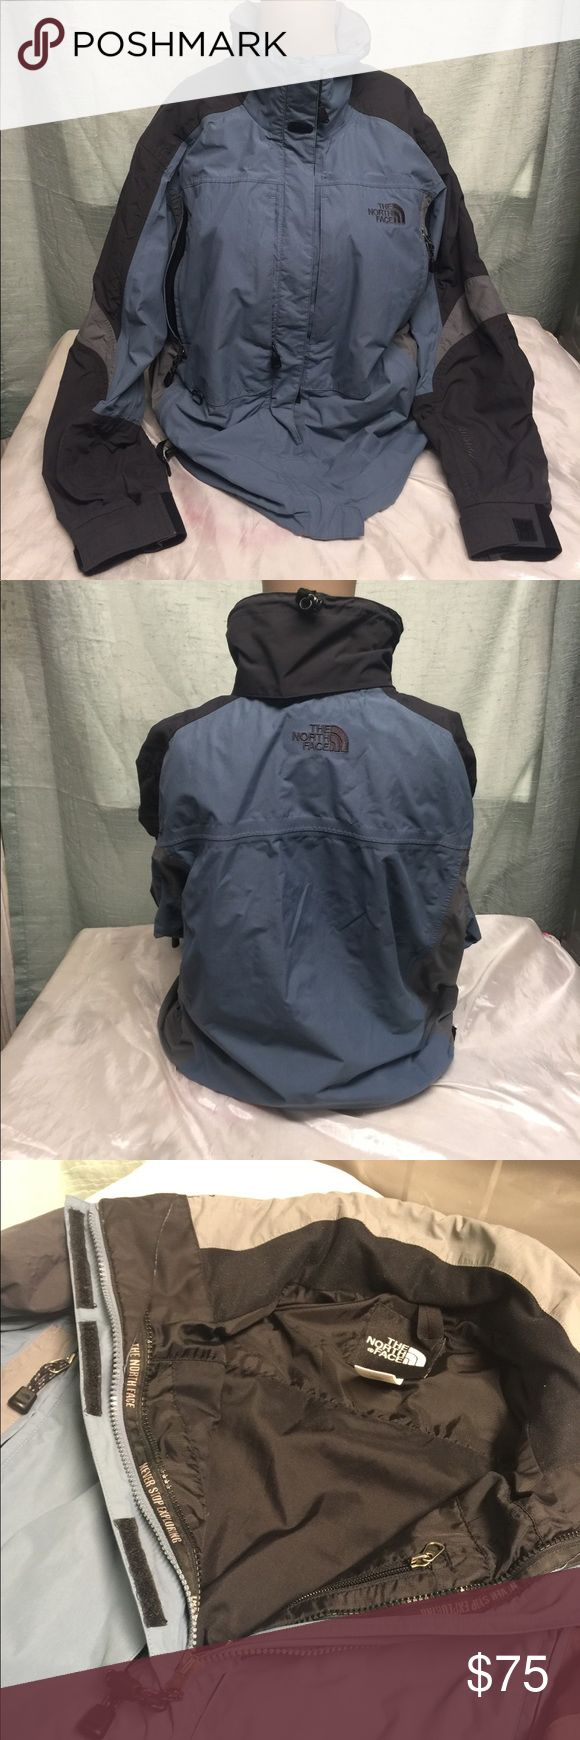 The North Face Jacket Hyvent waterproof breathable, Seam - sealed it acts as a barrier that will keep you going. In good condition it's missing the hoodie. Price will reflect that. The North Face Jackets & Coats